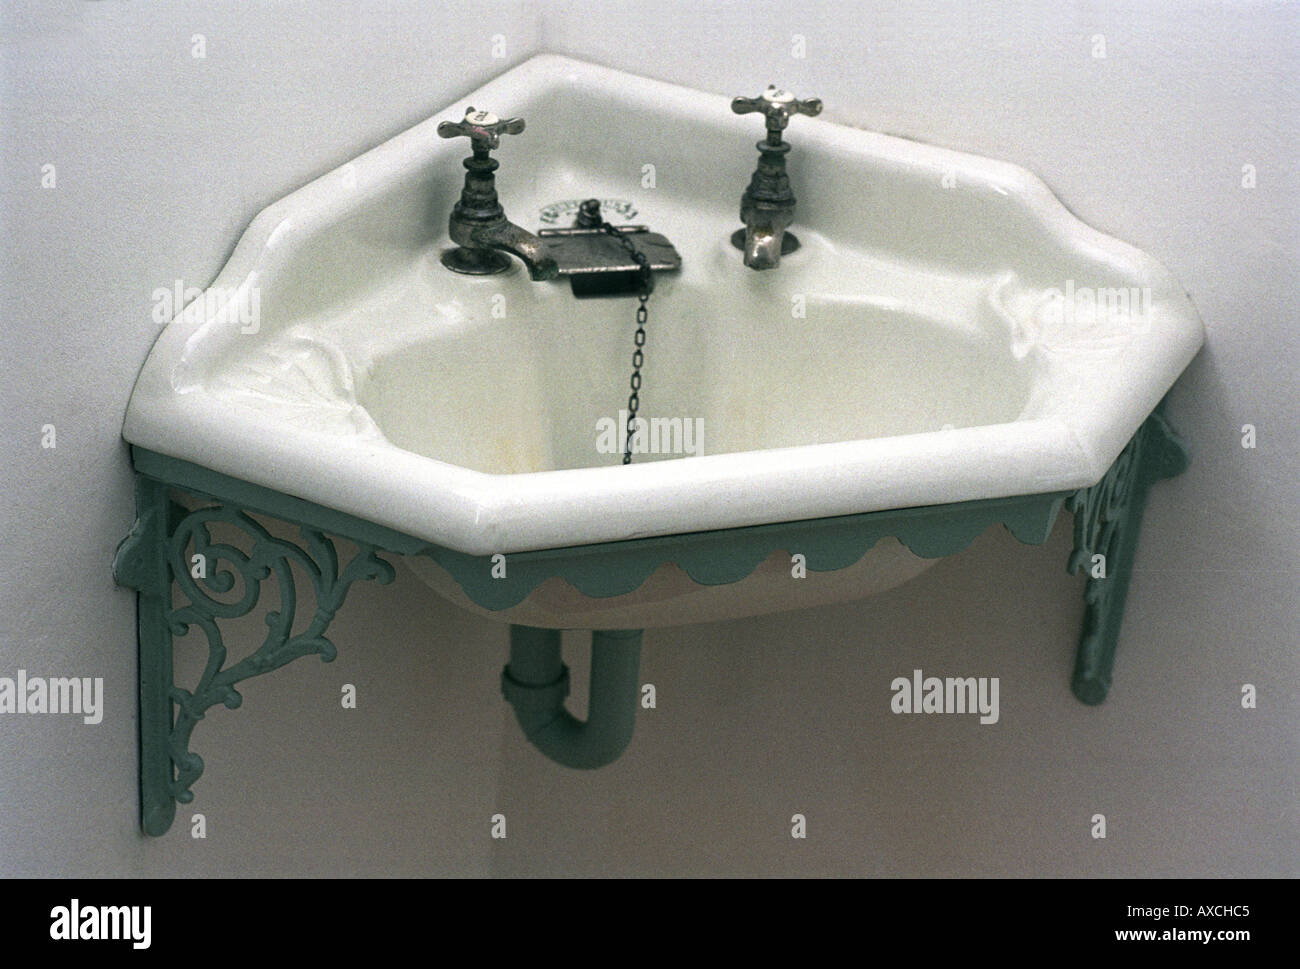 Burlington Corner Sink : Victorian Style Corner Sink Unit Stock Photo, Royalty Free Image ...